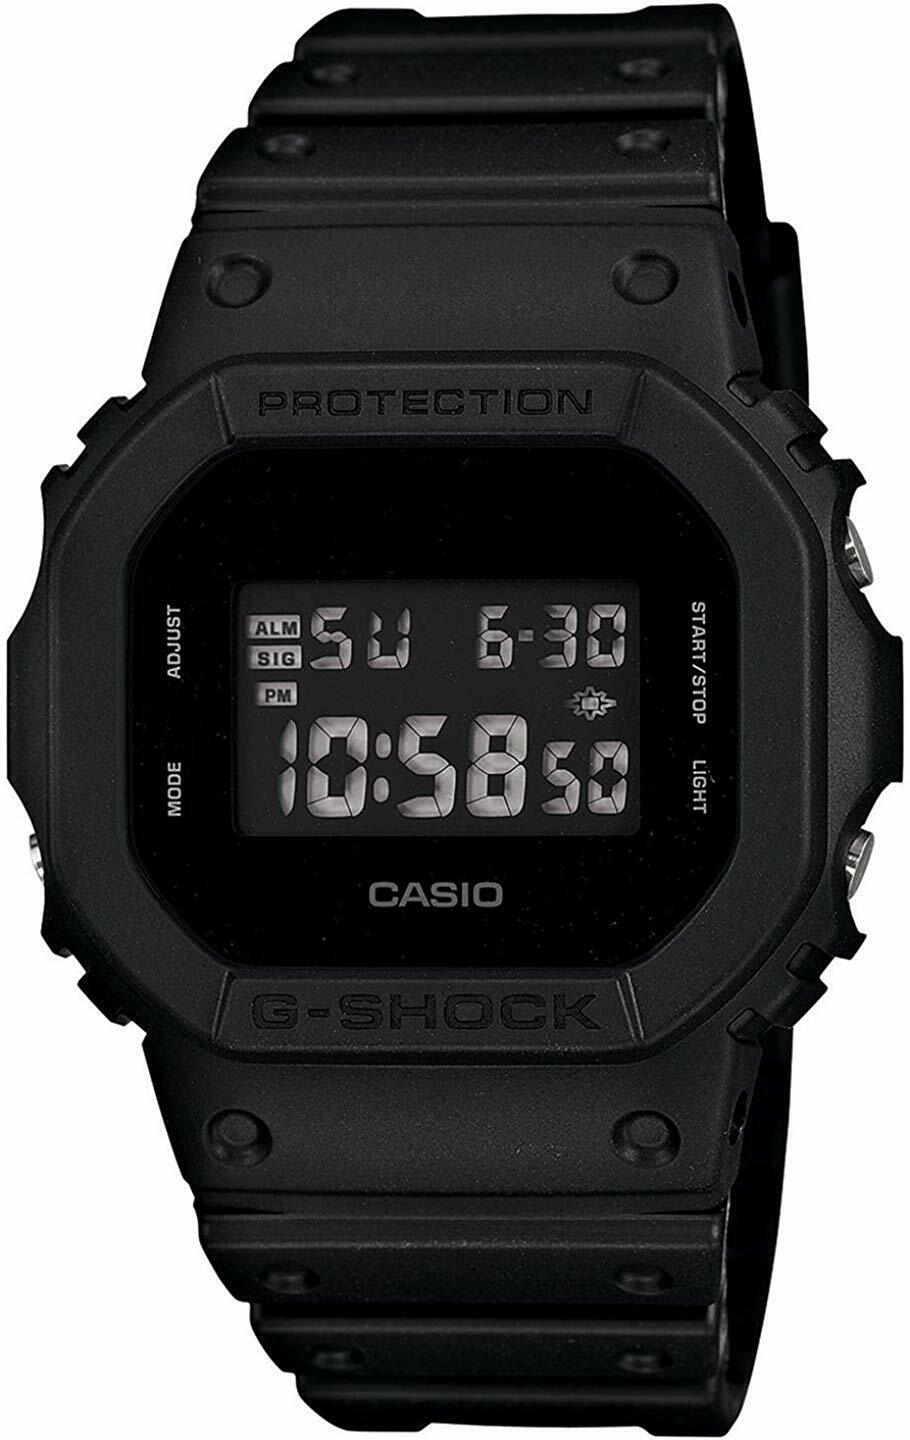 Casio G-SHOCK SPECIALS DW5600BB-1 Watch Limited Import Solid